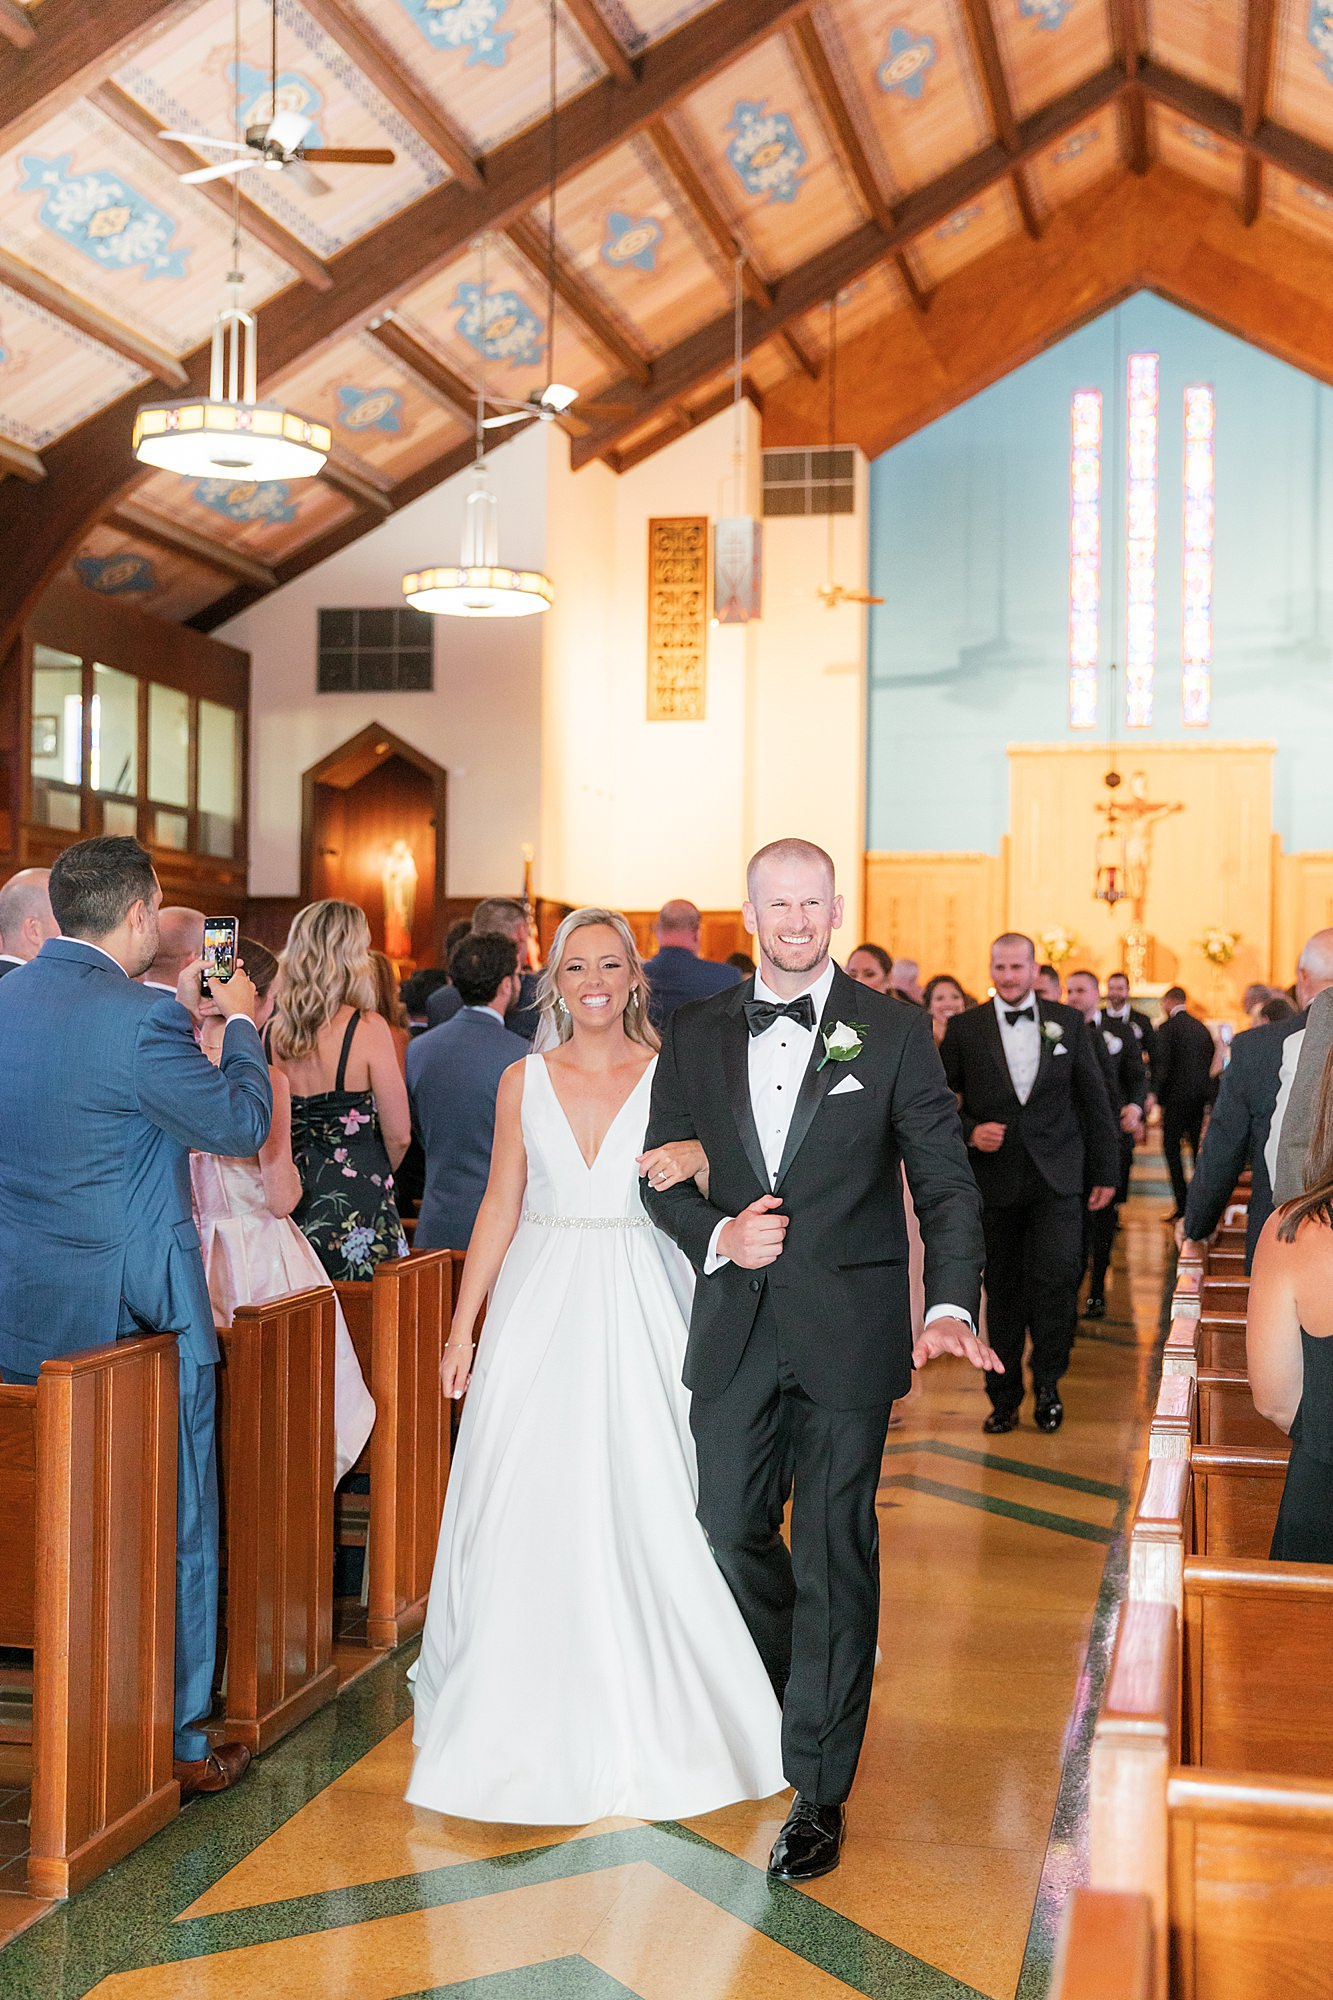 Natural and Vibrant Wedding Photography at the Reeds in Stone Harbor NJ by Magdalena Studios 0026